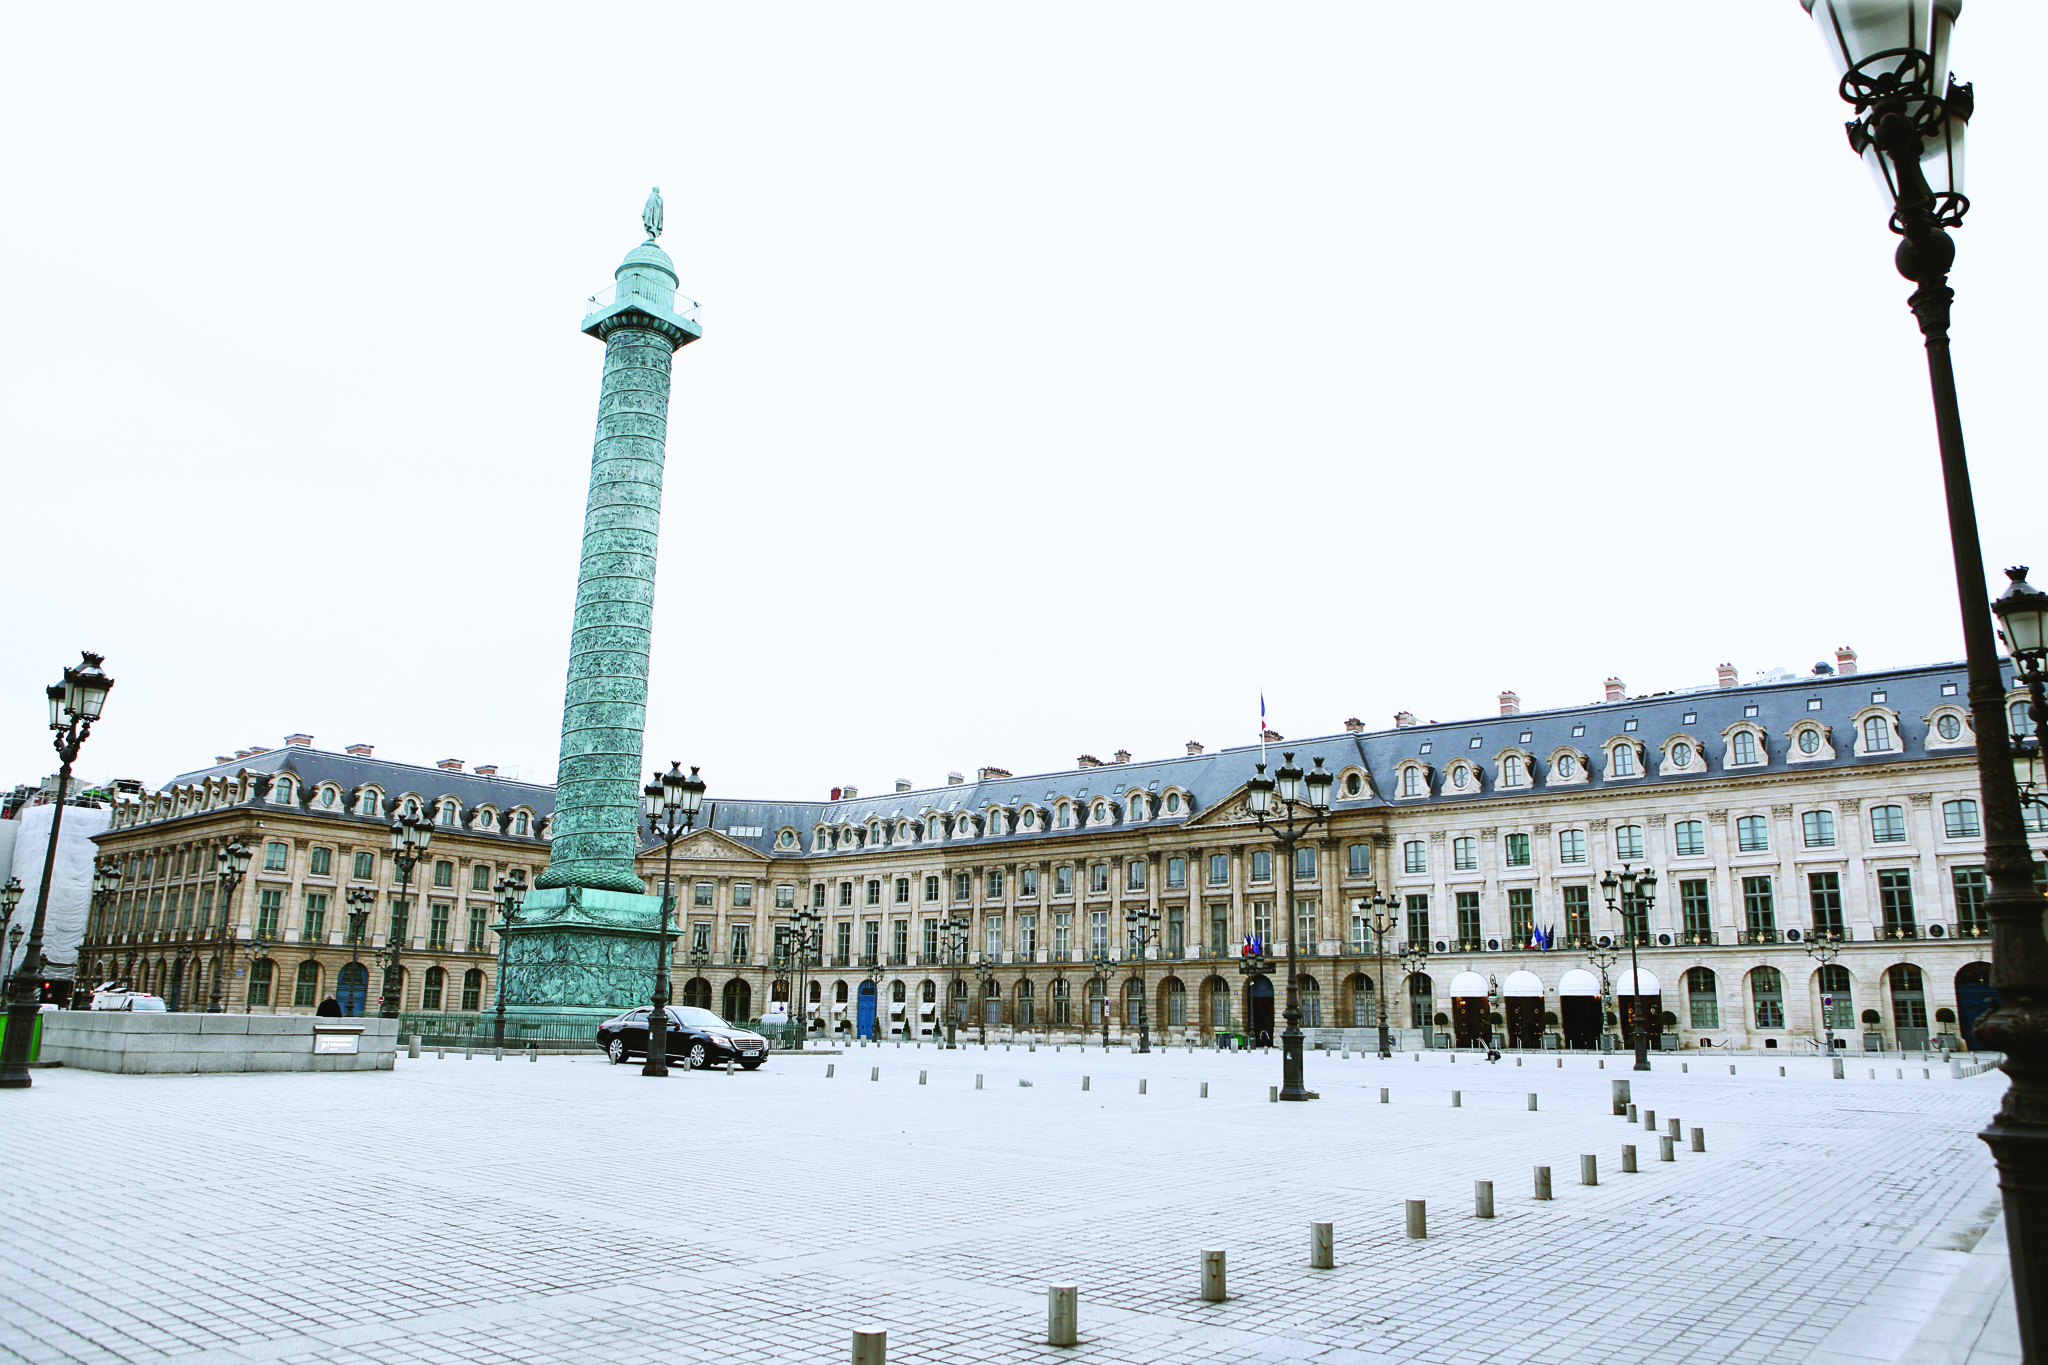 The four-year renovation of the Ritz is the anchor for the Place Vendôme's overhaul